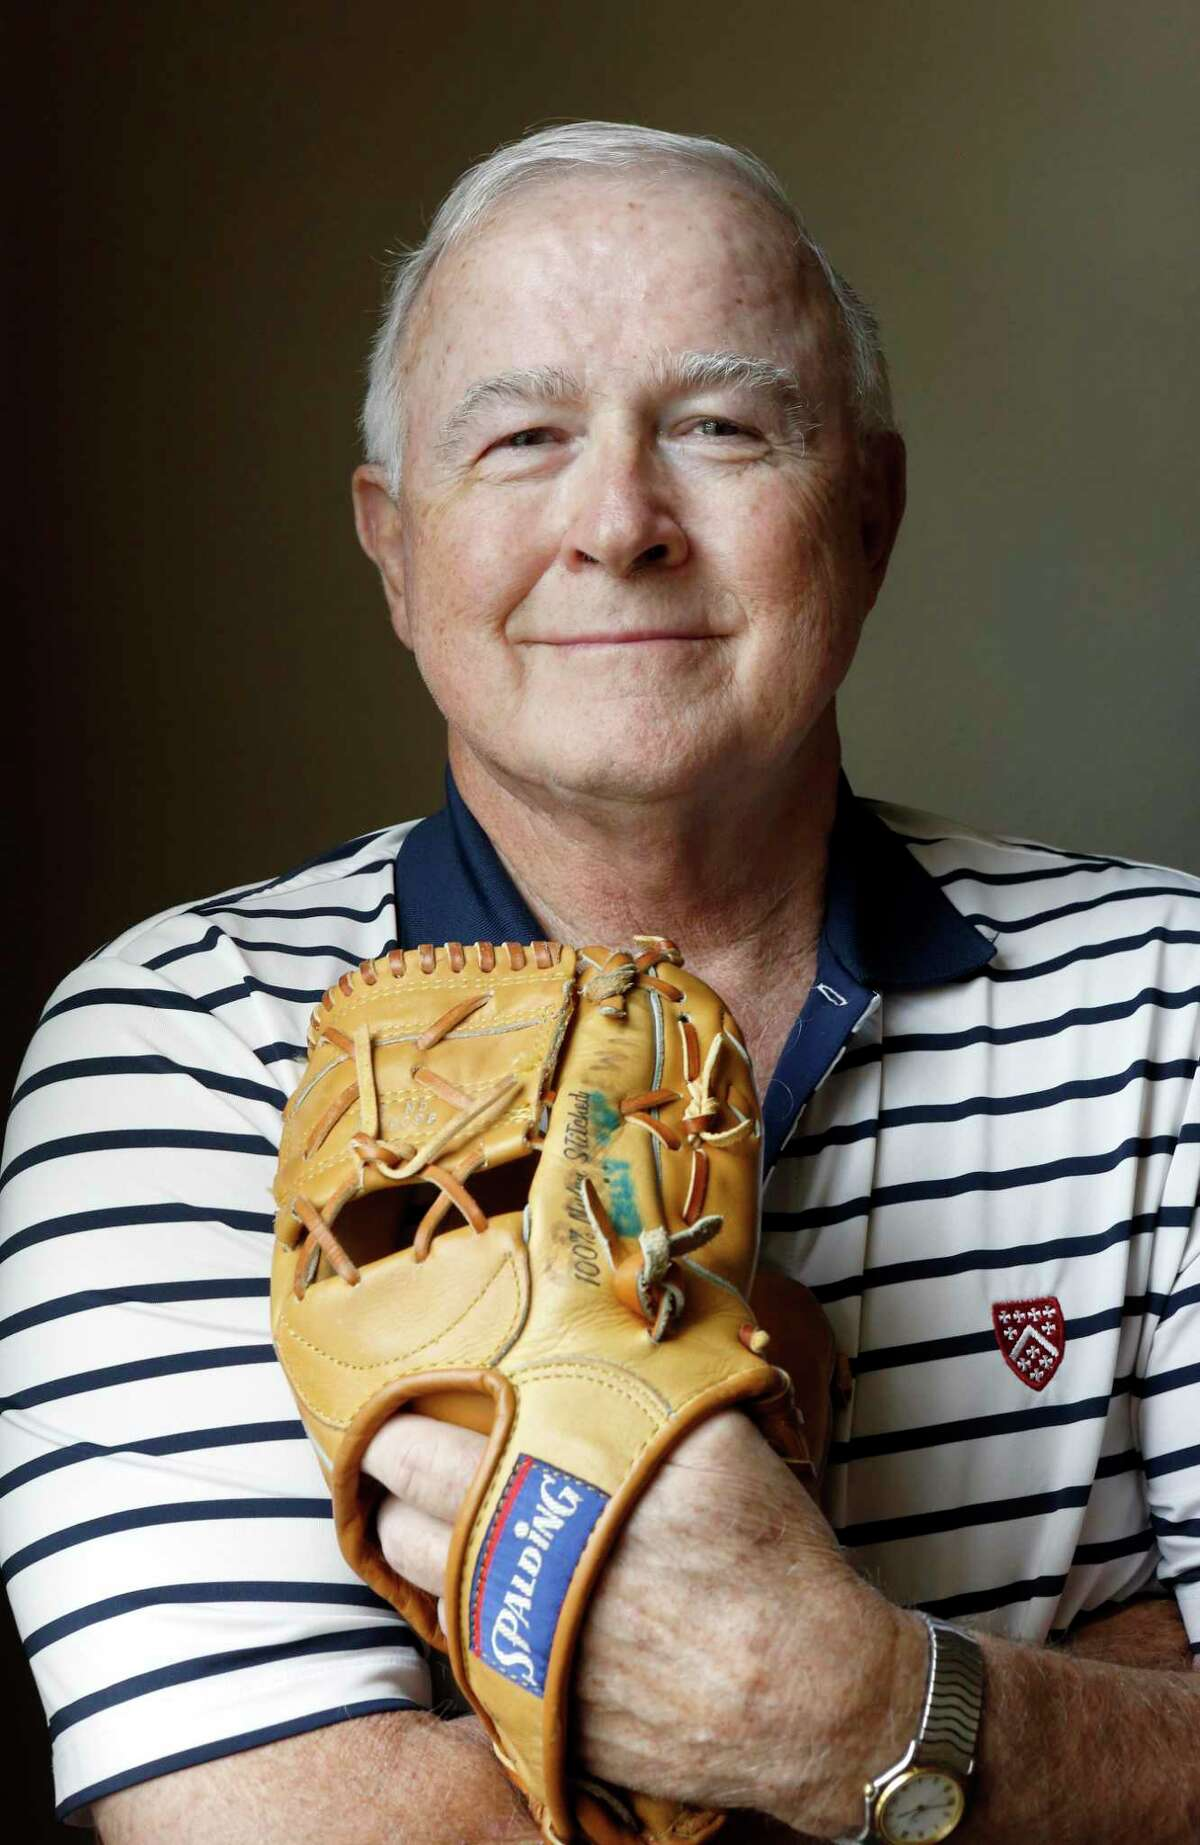 Former Major League Baseball player Billy Grabarkewitz, with a baseball glove he played with, at his home in Colleyville, Texas on Friday, June 14, 2019. Grabarkewitz looks back at the 1970 All-Star Game, which amazingly included three players from San Antonio. (photo by Lara Solt )